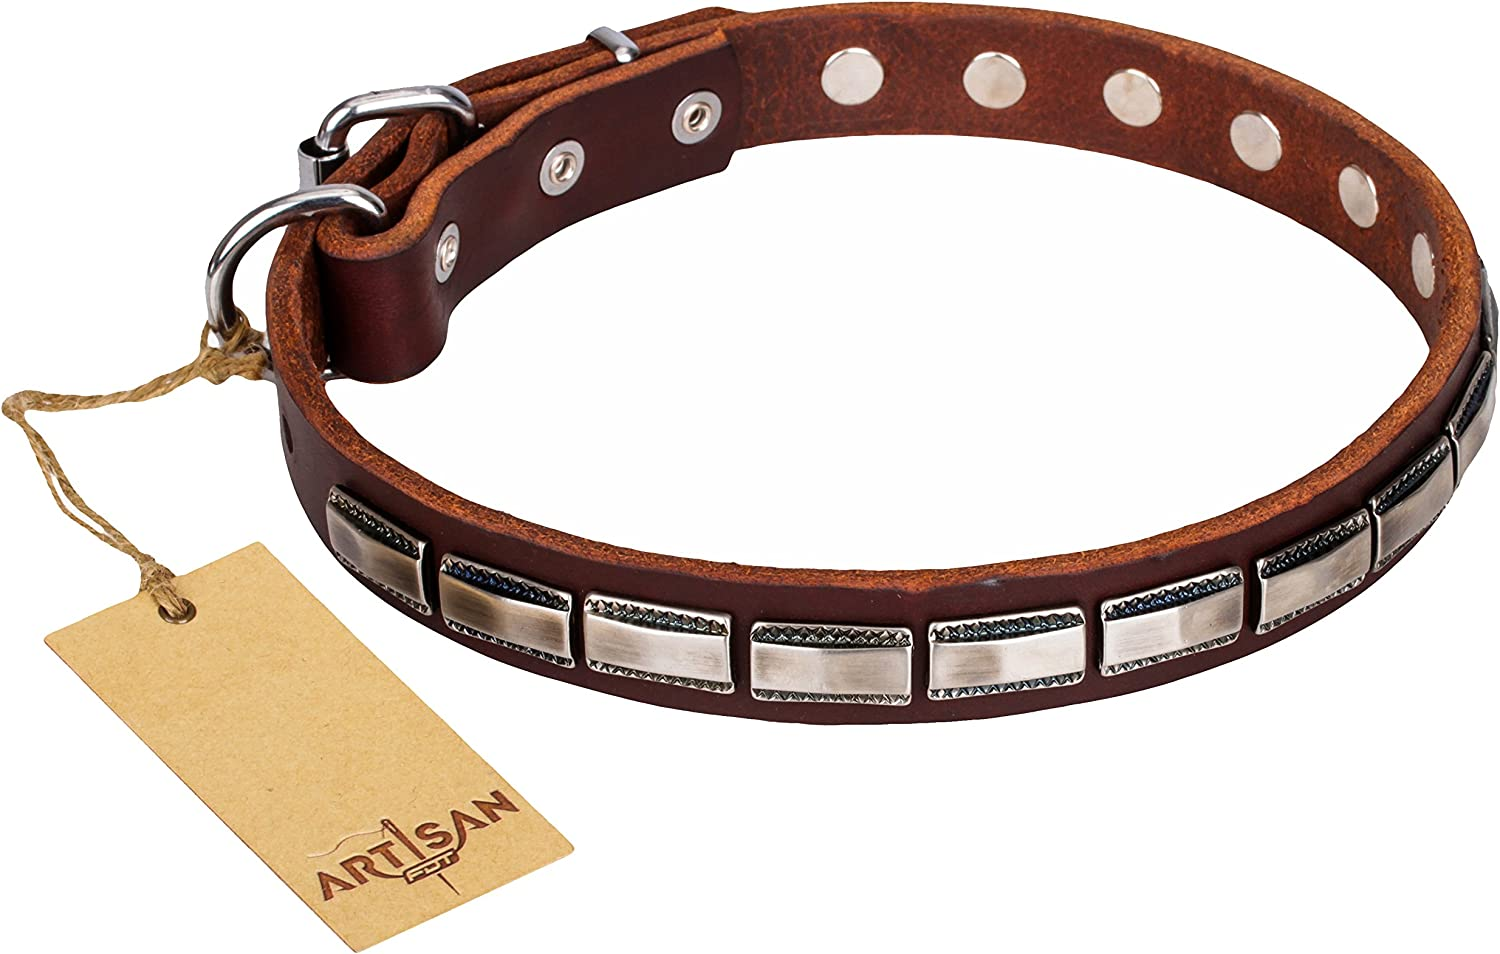 FDT Artisan 28 inch Brown Leather Dog Collar with Fake Silver Plates  Refined Classic  1 inch (25 mm) widev